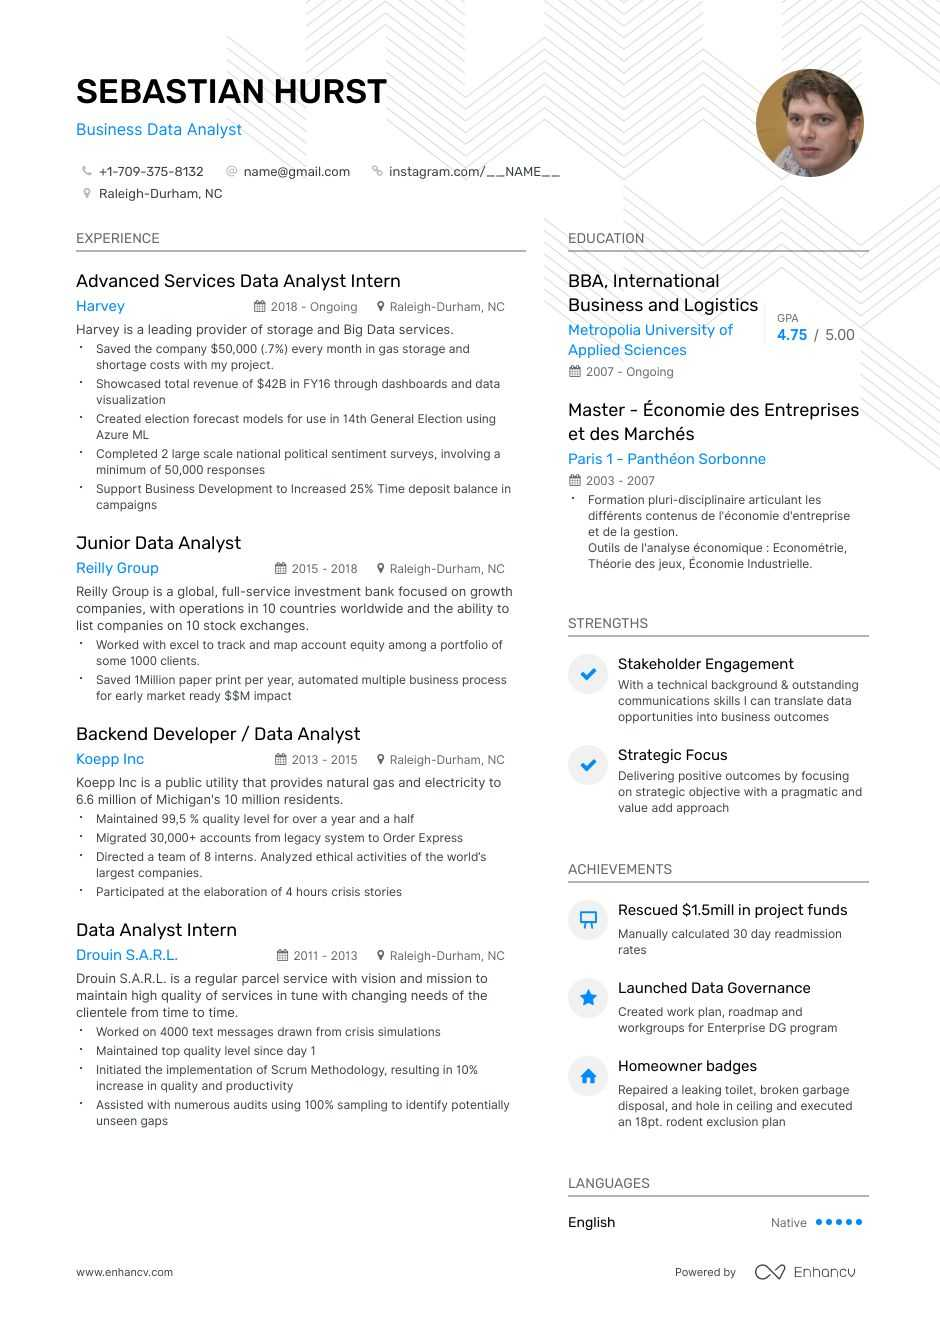 top business data analyst resume examples expert tips enhancv migration broadcast editor Resume Data Migration Business Analyst Resume